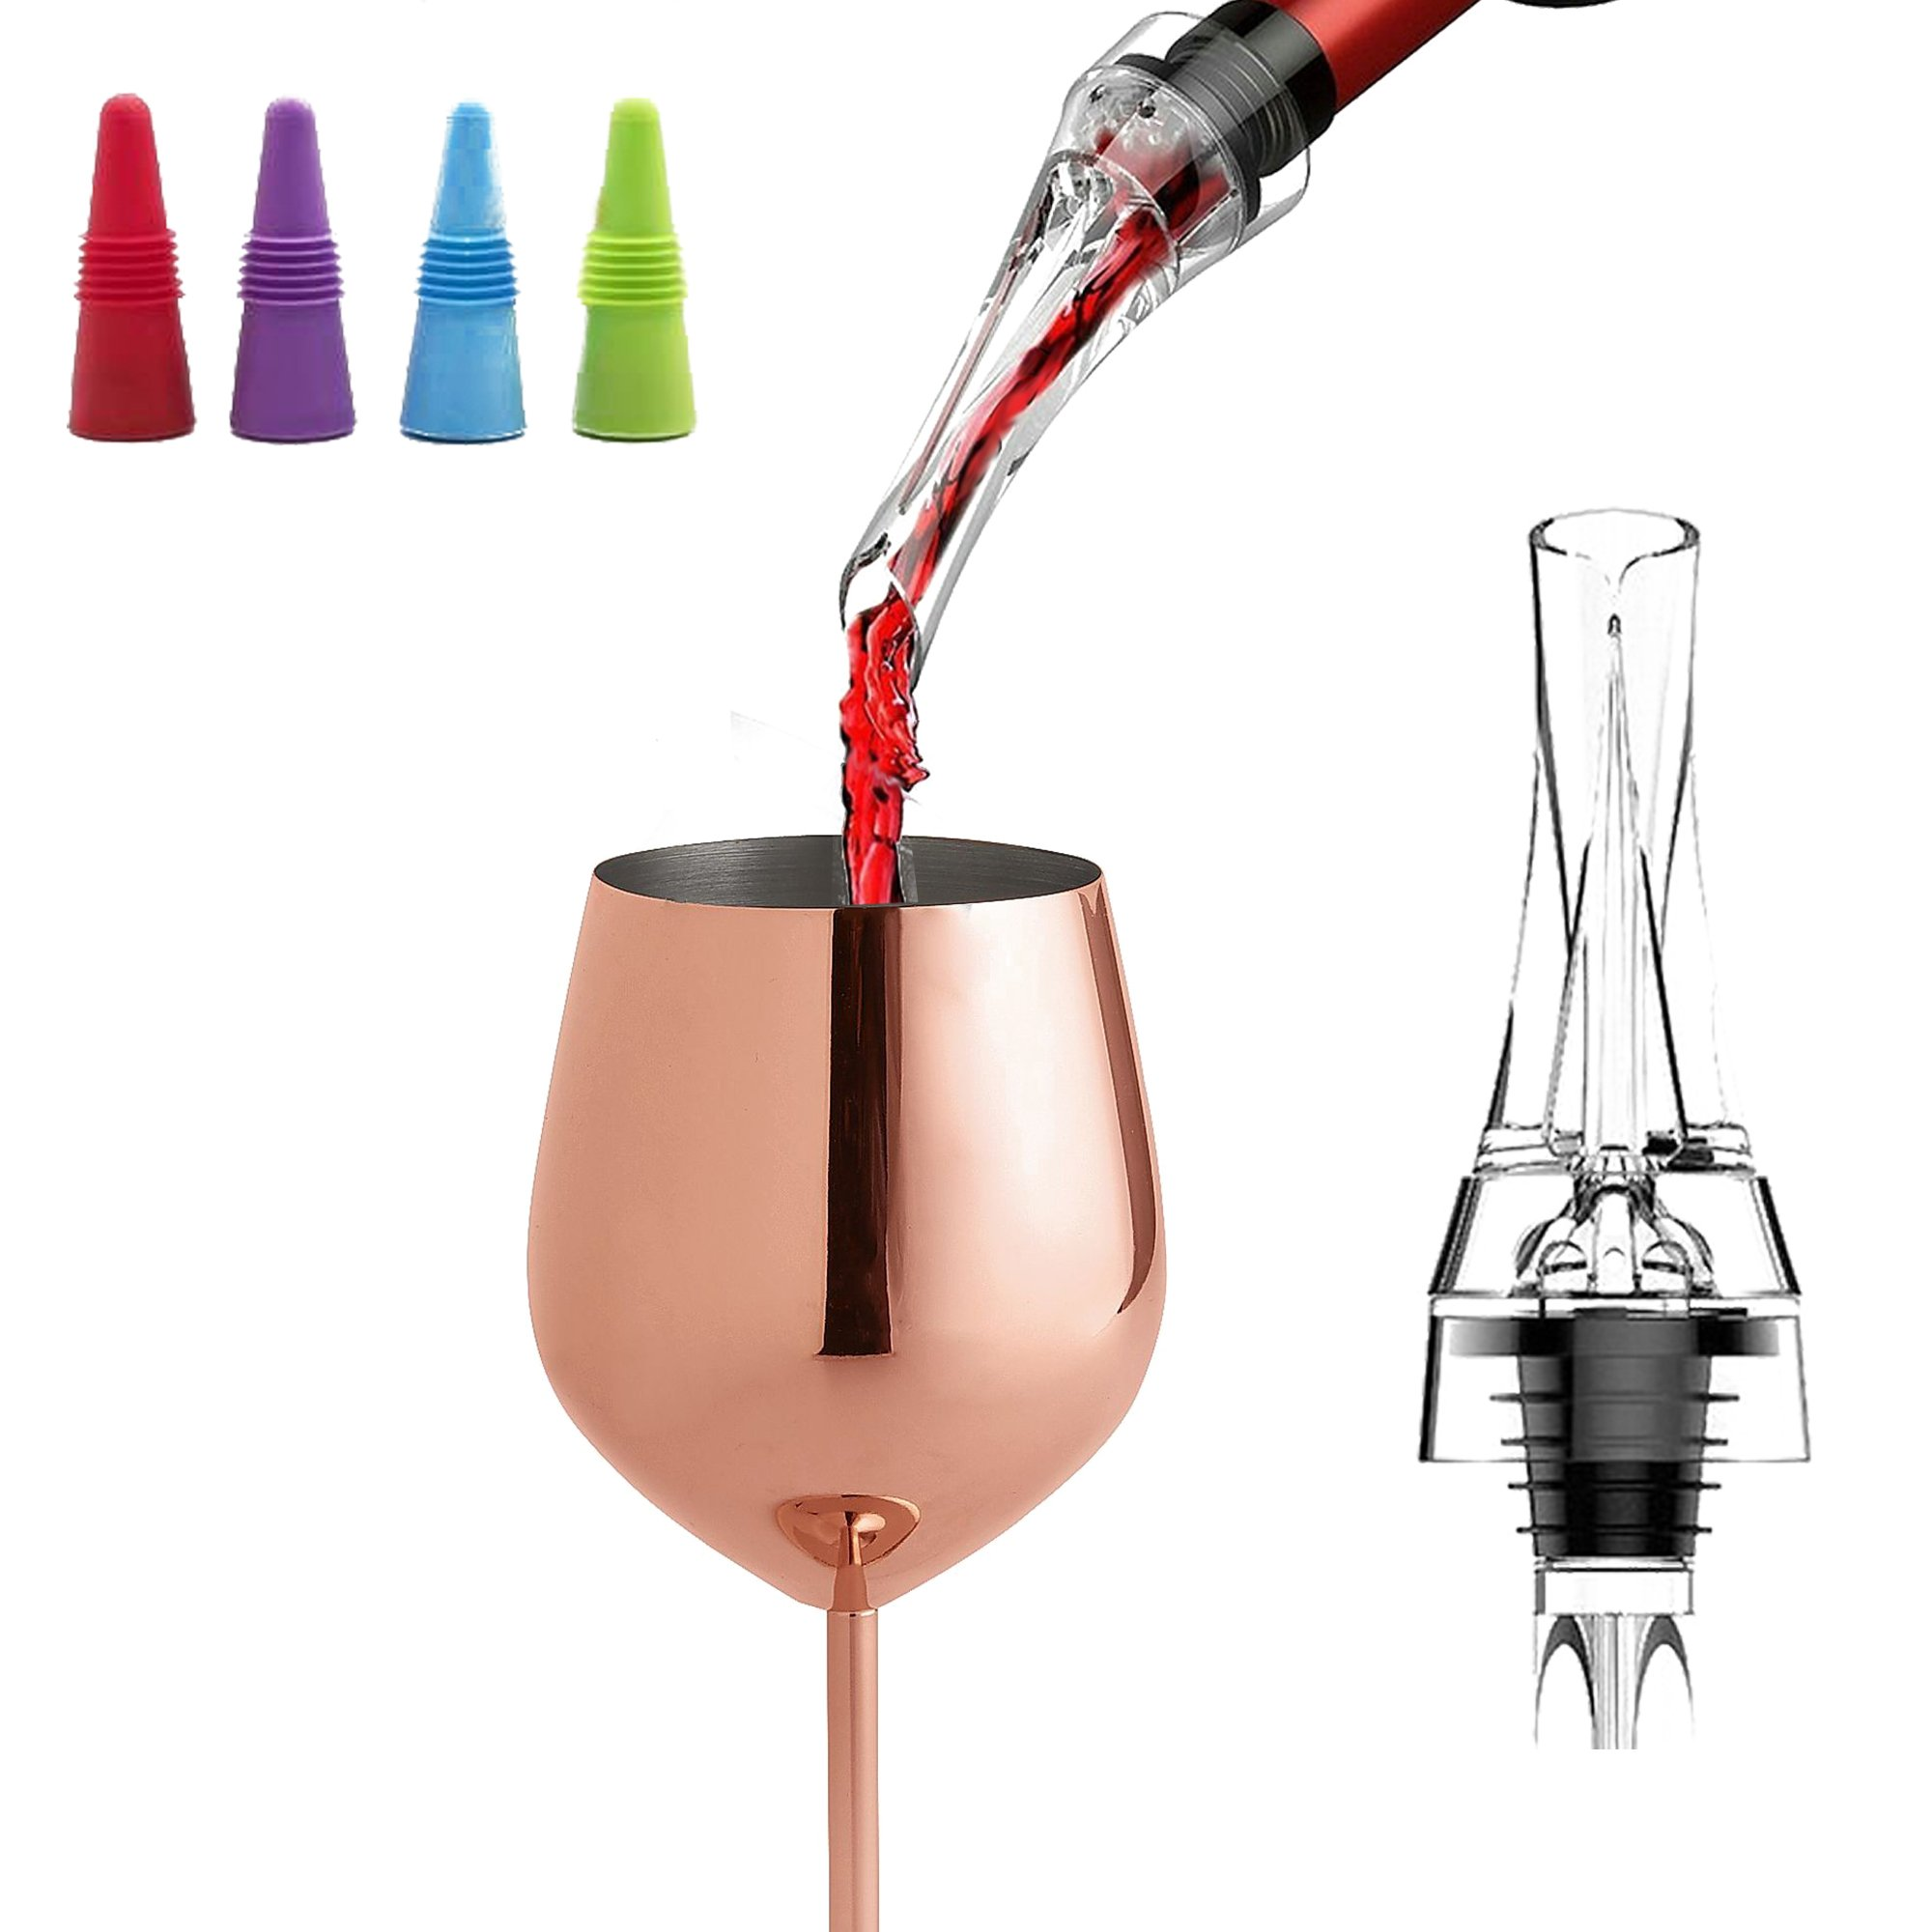 LE FLEUR Wine Aerator Pourer Decanter and Wine Stopper Set - Perfect Gift for Wine Lovers - Cellar Door Selections by Cellar Door Selections (Image #1)